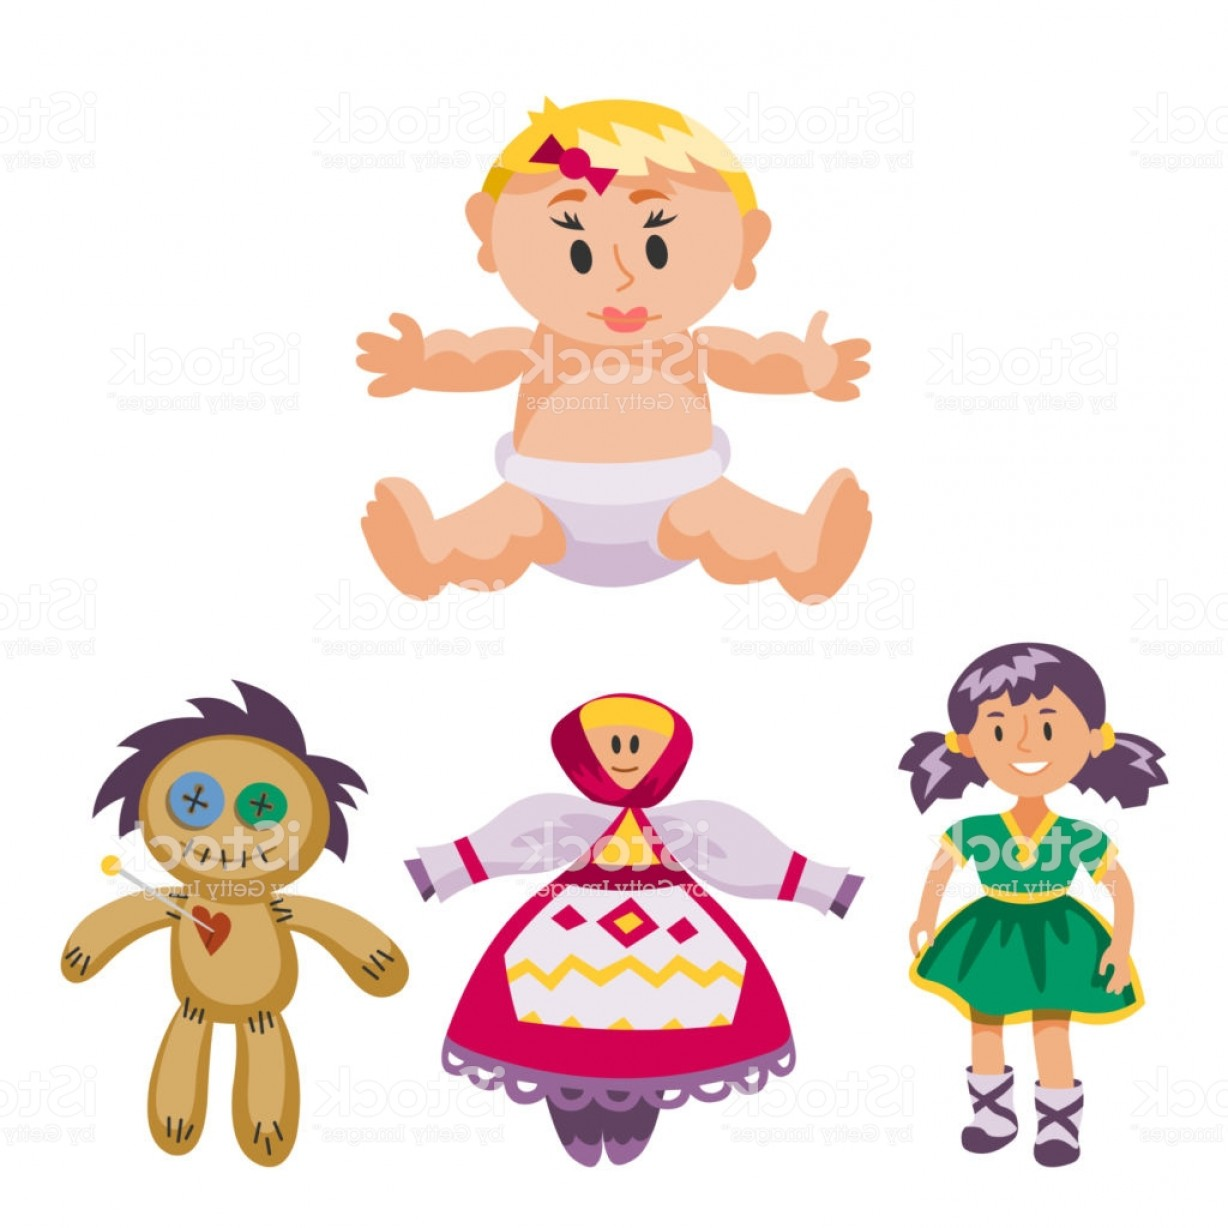 Scarecrow Vector Art: Different Dolls Toy Character Game Dress And Farm Scarecrow Rag Doll Vector Gm